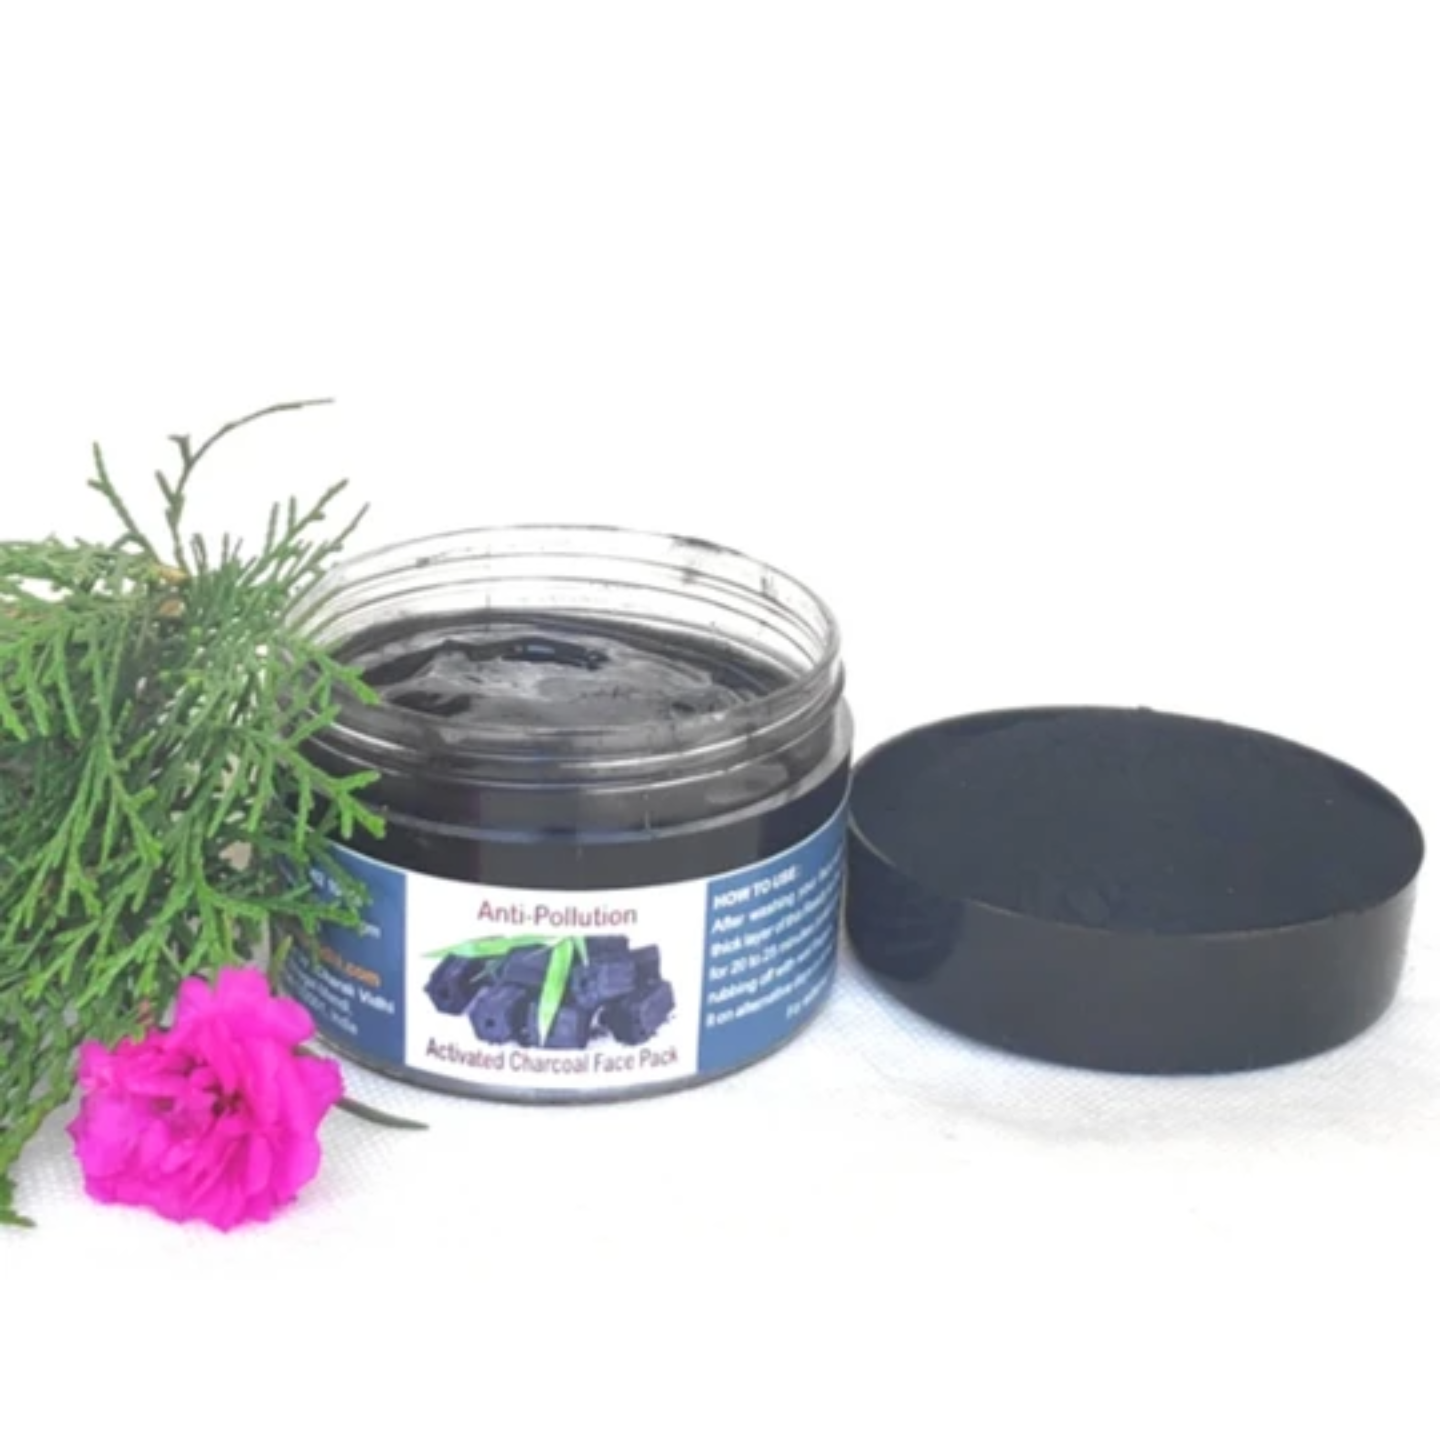 Activate Charcoal Anti-Pollution Ready to Use Face Pack